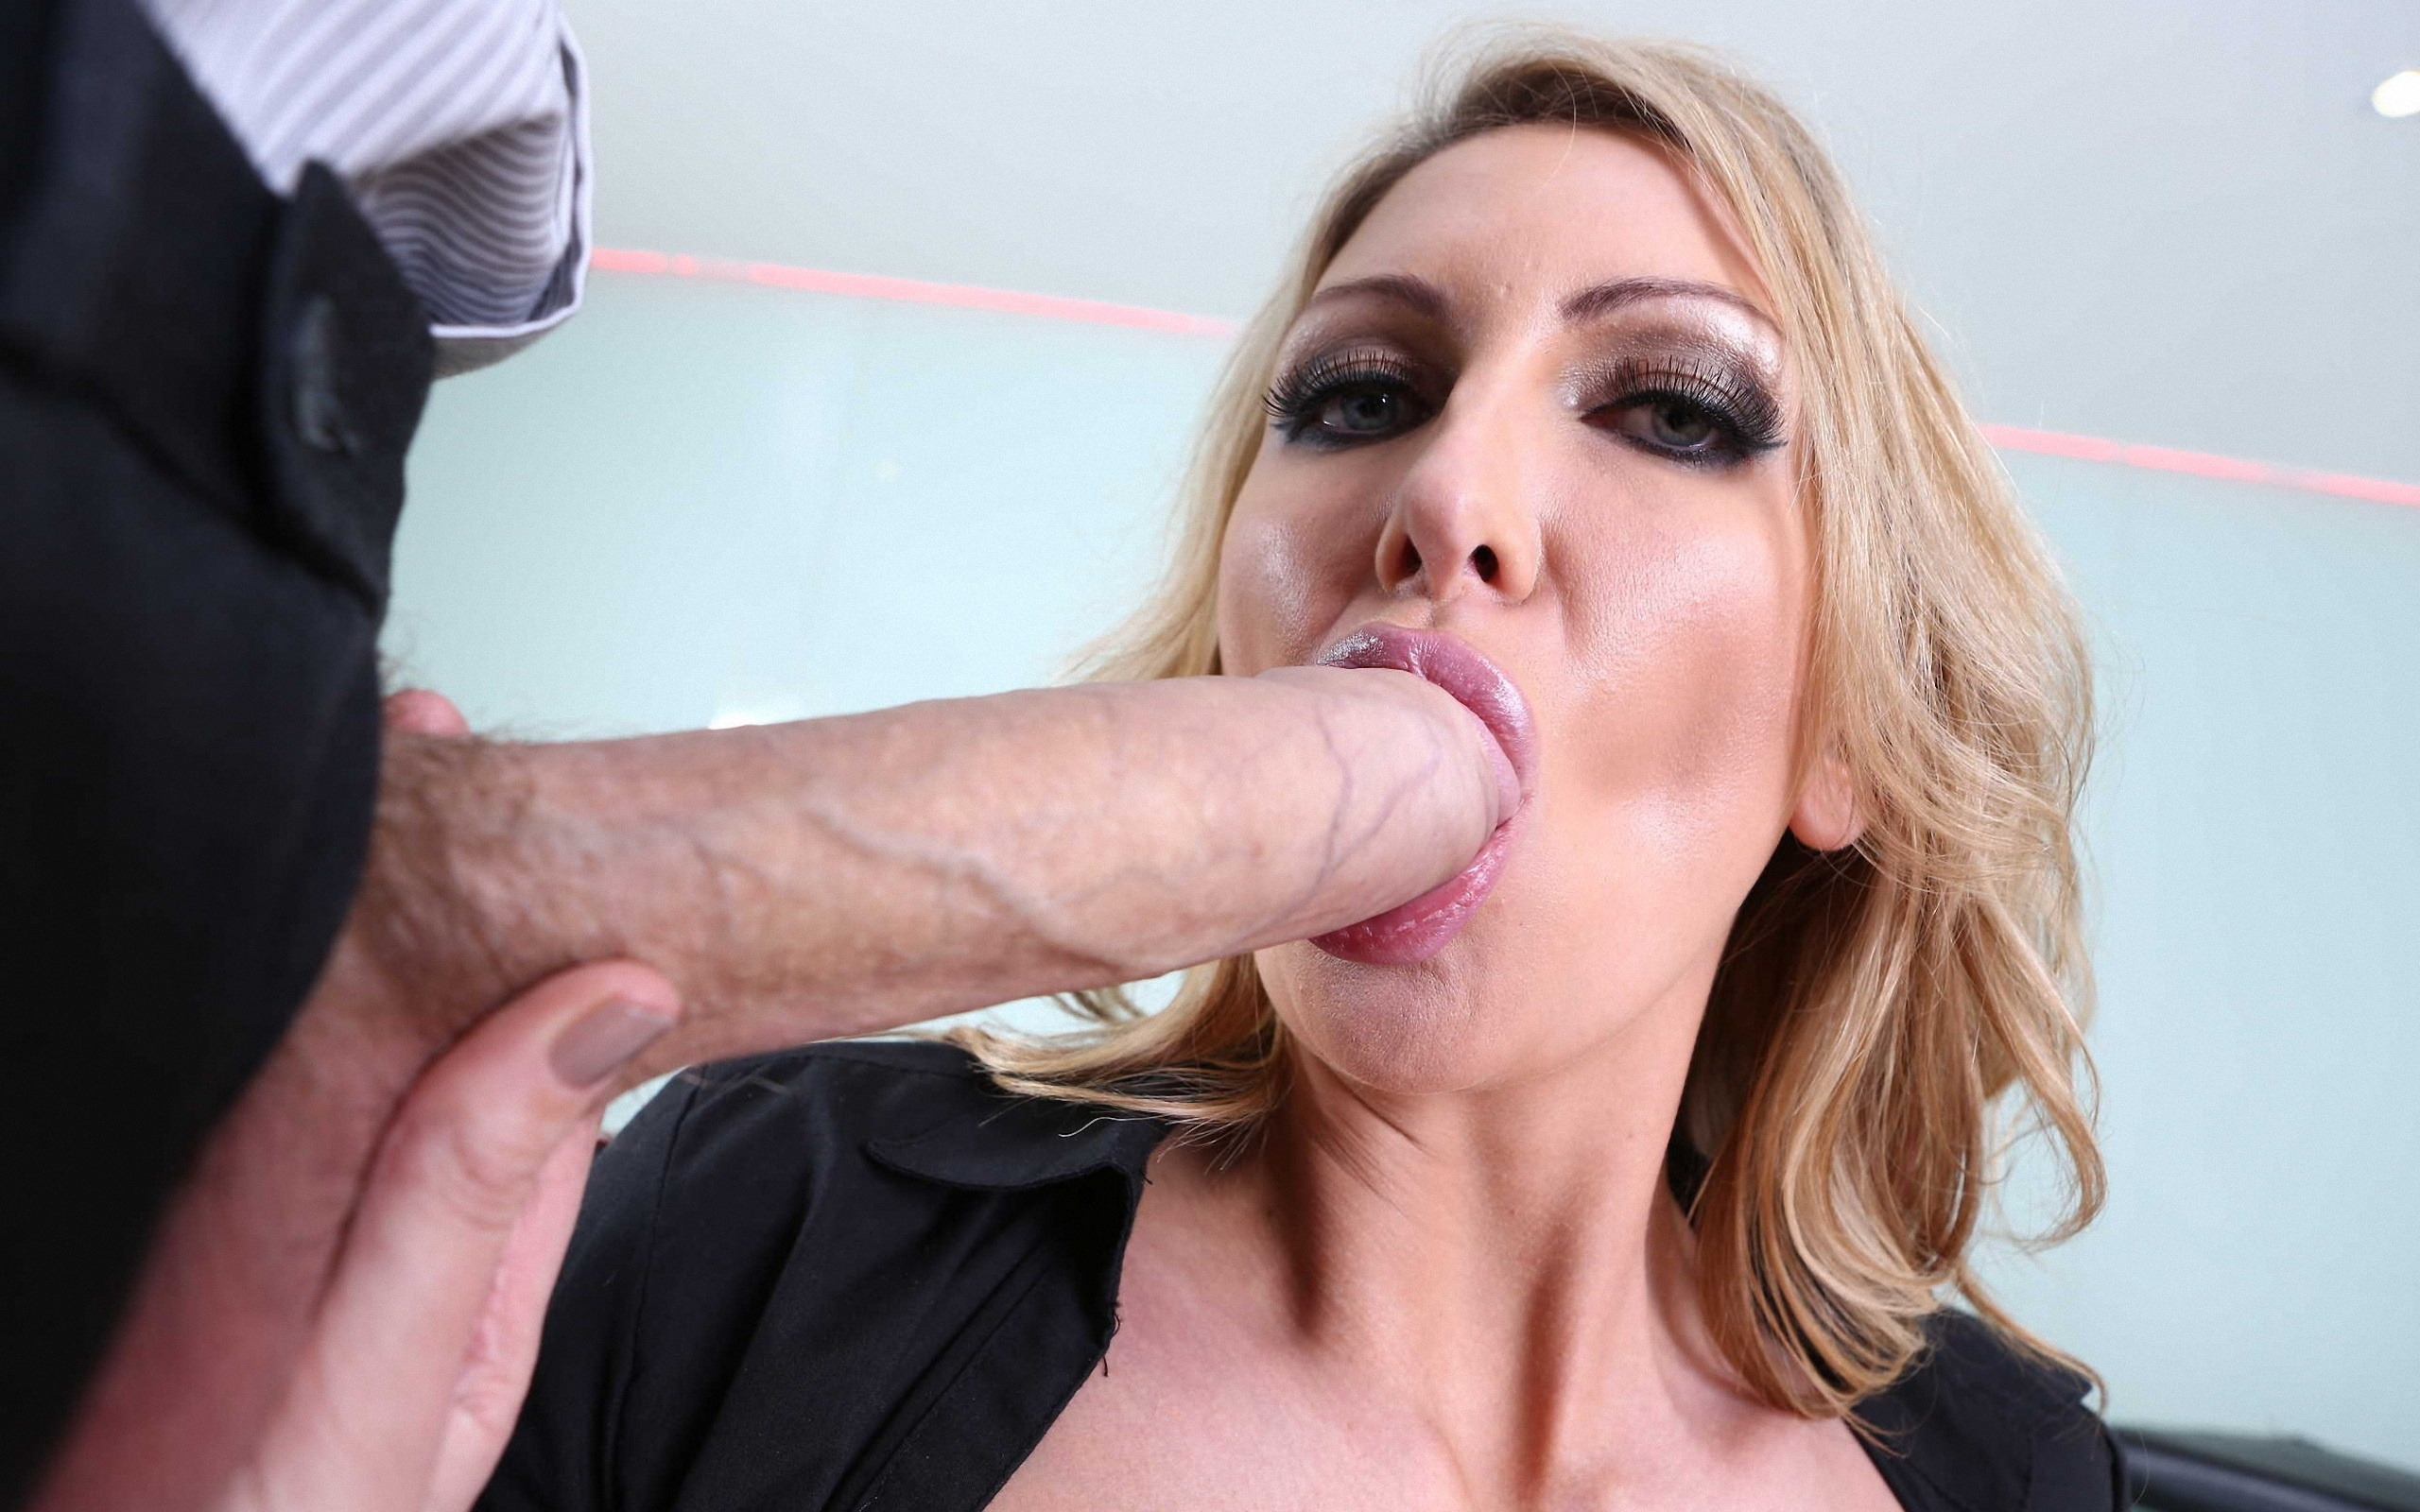 wallpaper leigh darby, pornstar, blonde, blowjob, sucking, suck